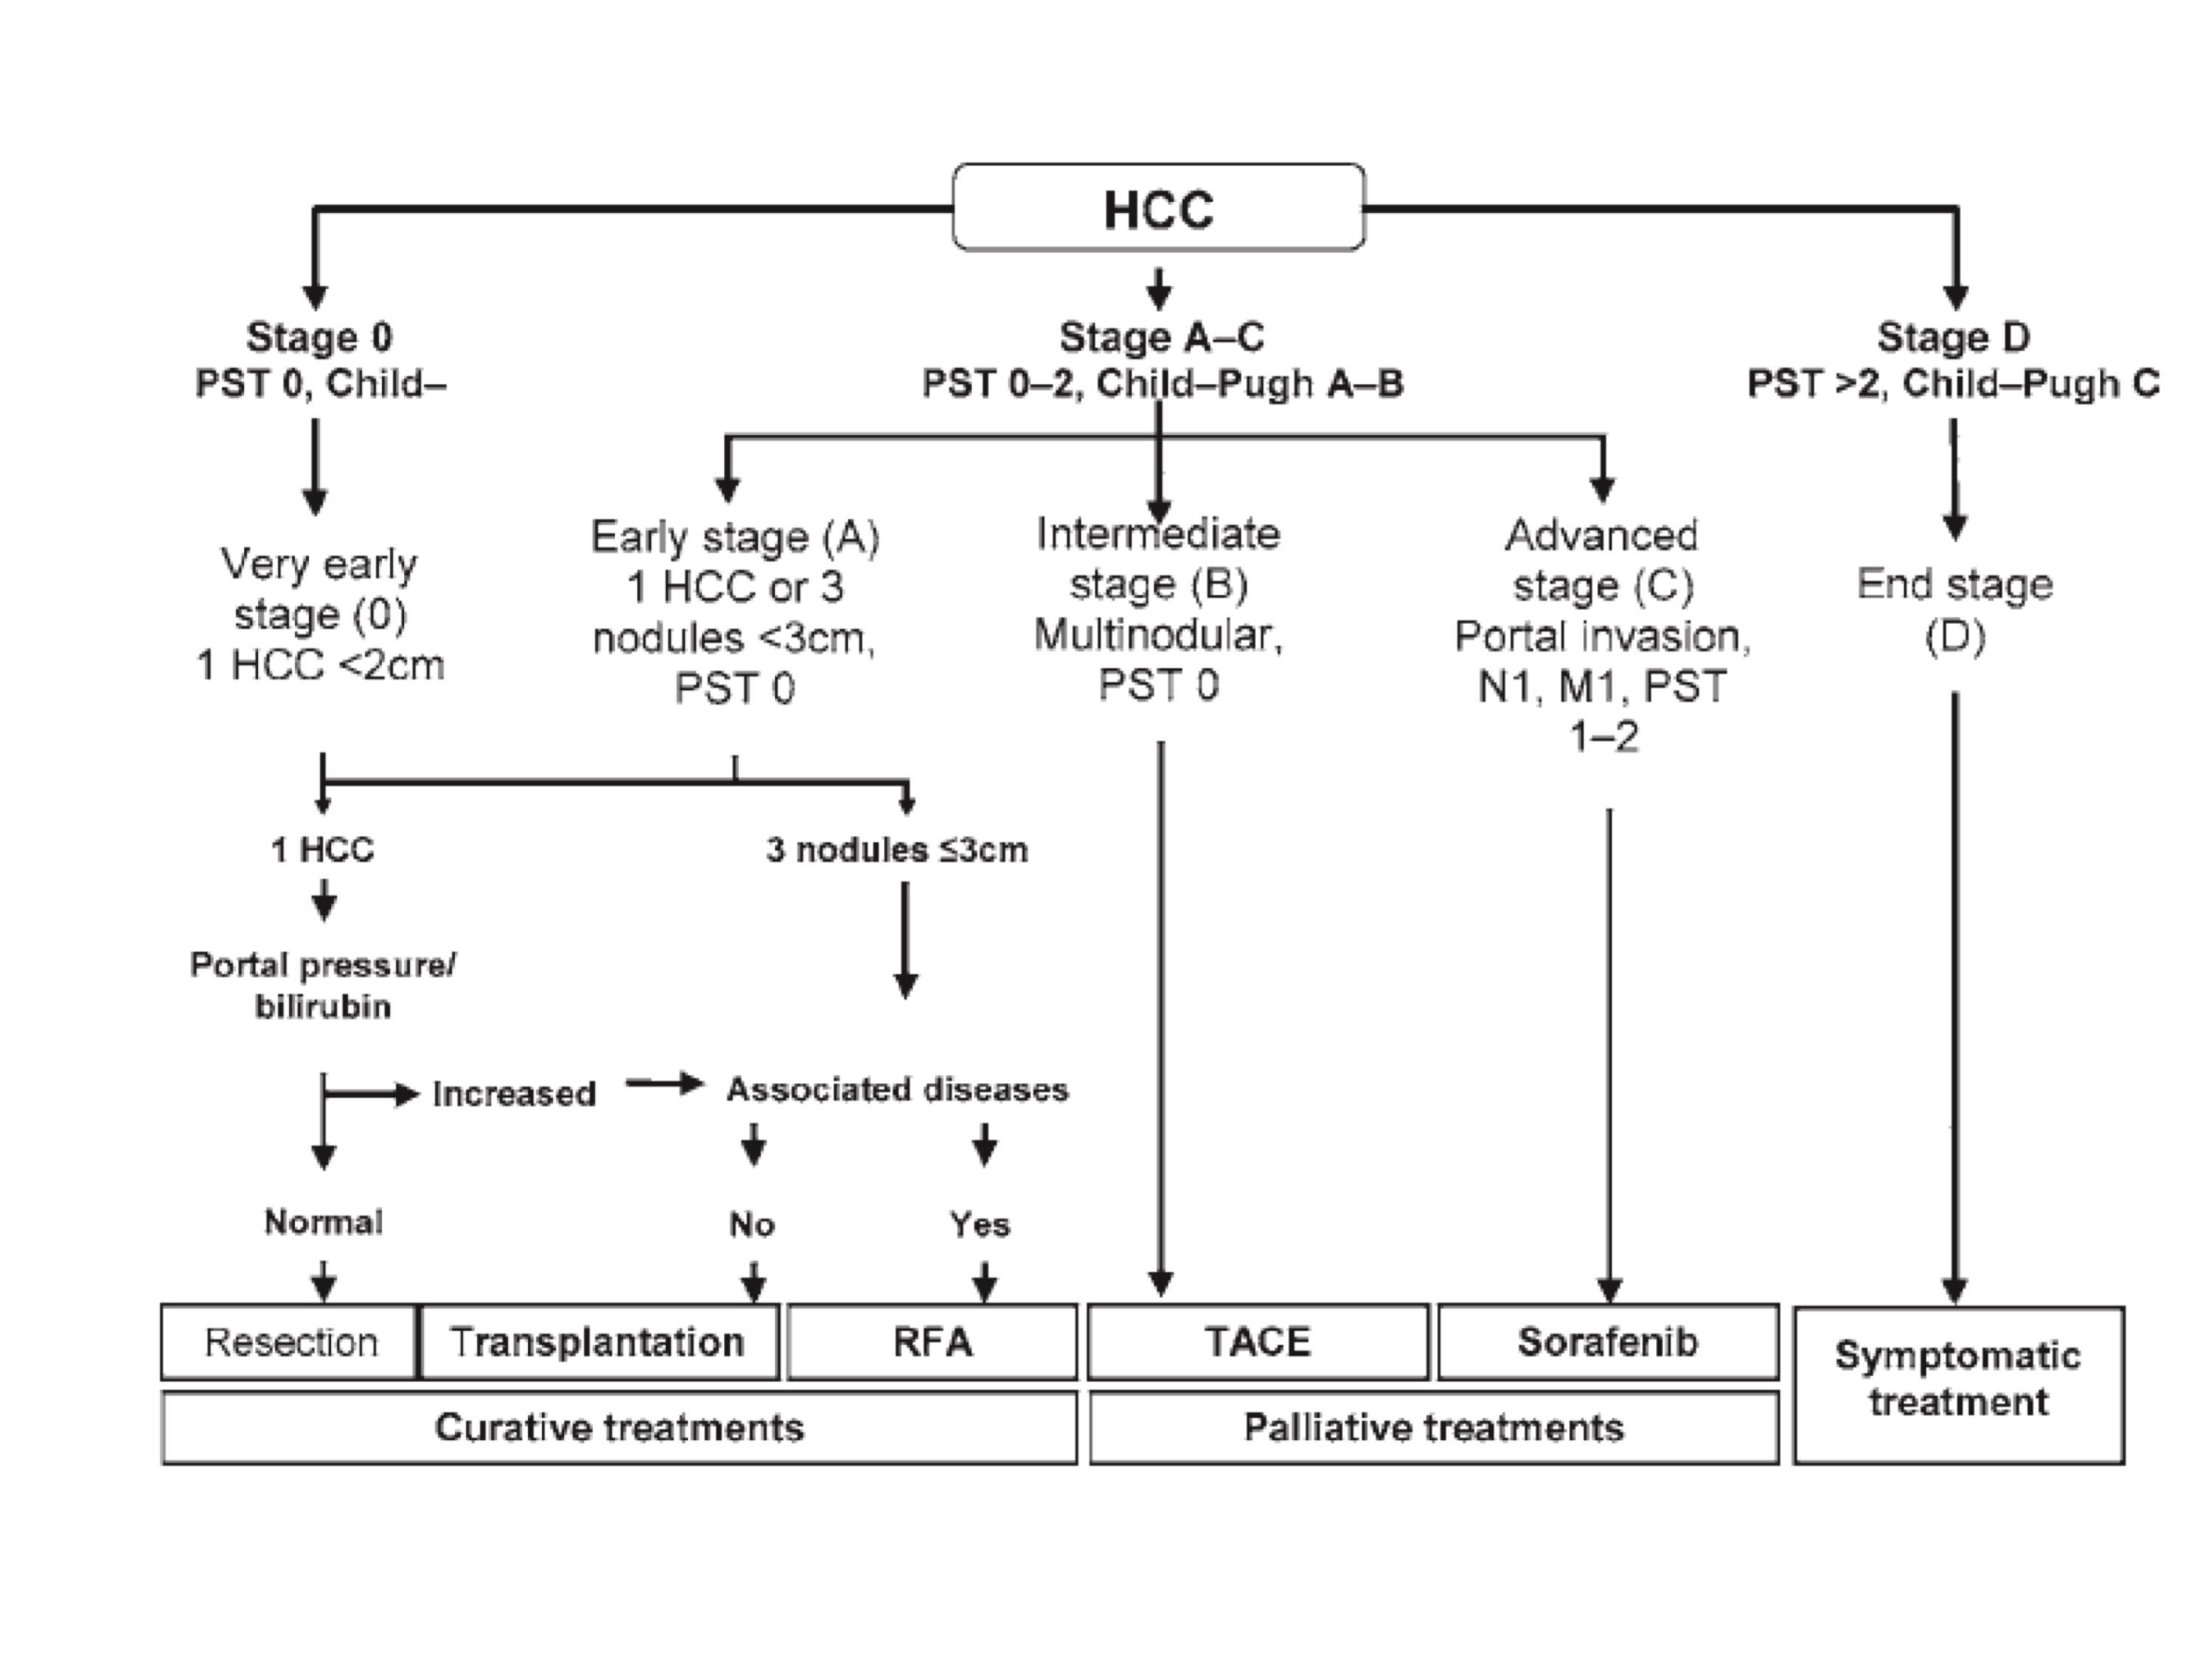 hepatic cancer guidelines human papillomavirus pathogenesis